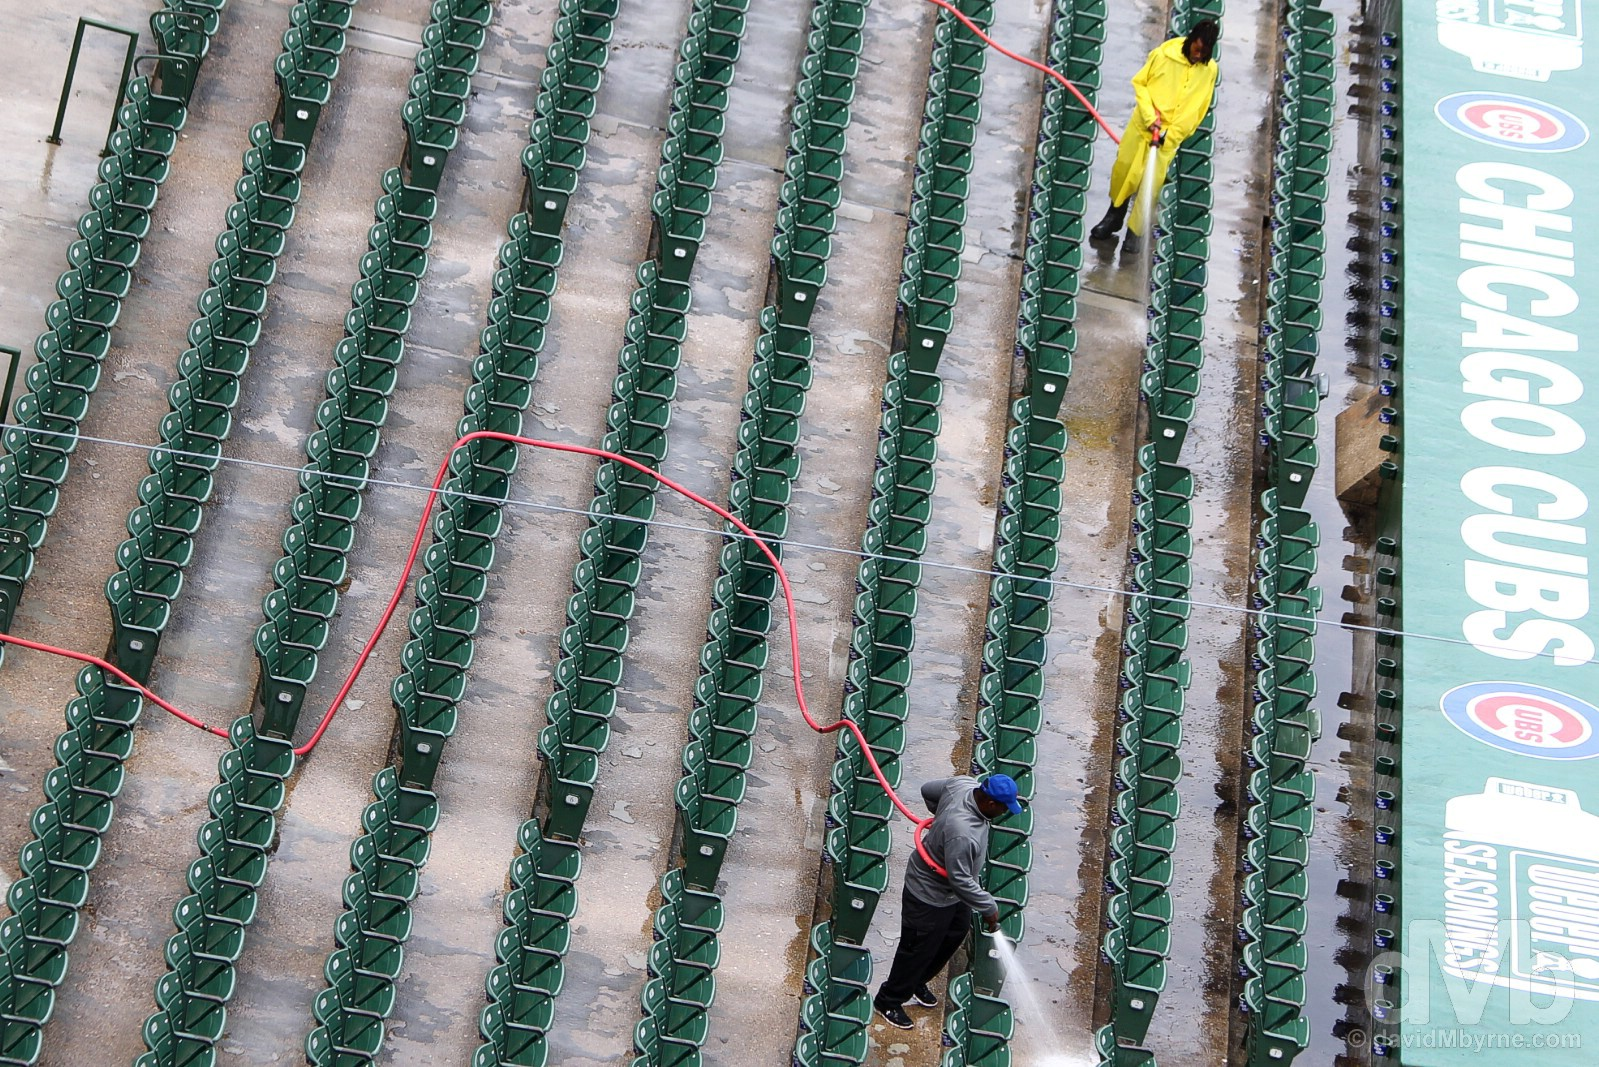 Maintenance in Wrigley Field, the home of the Chicago Cubs. Wrigleyville, Chicago, Illinois, USA. October 1, 2016.